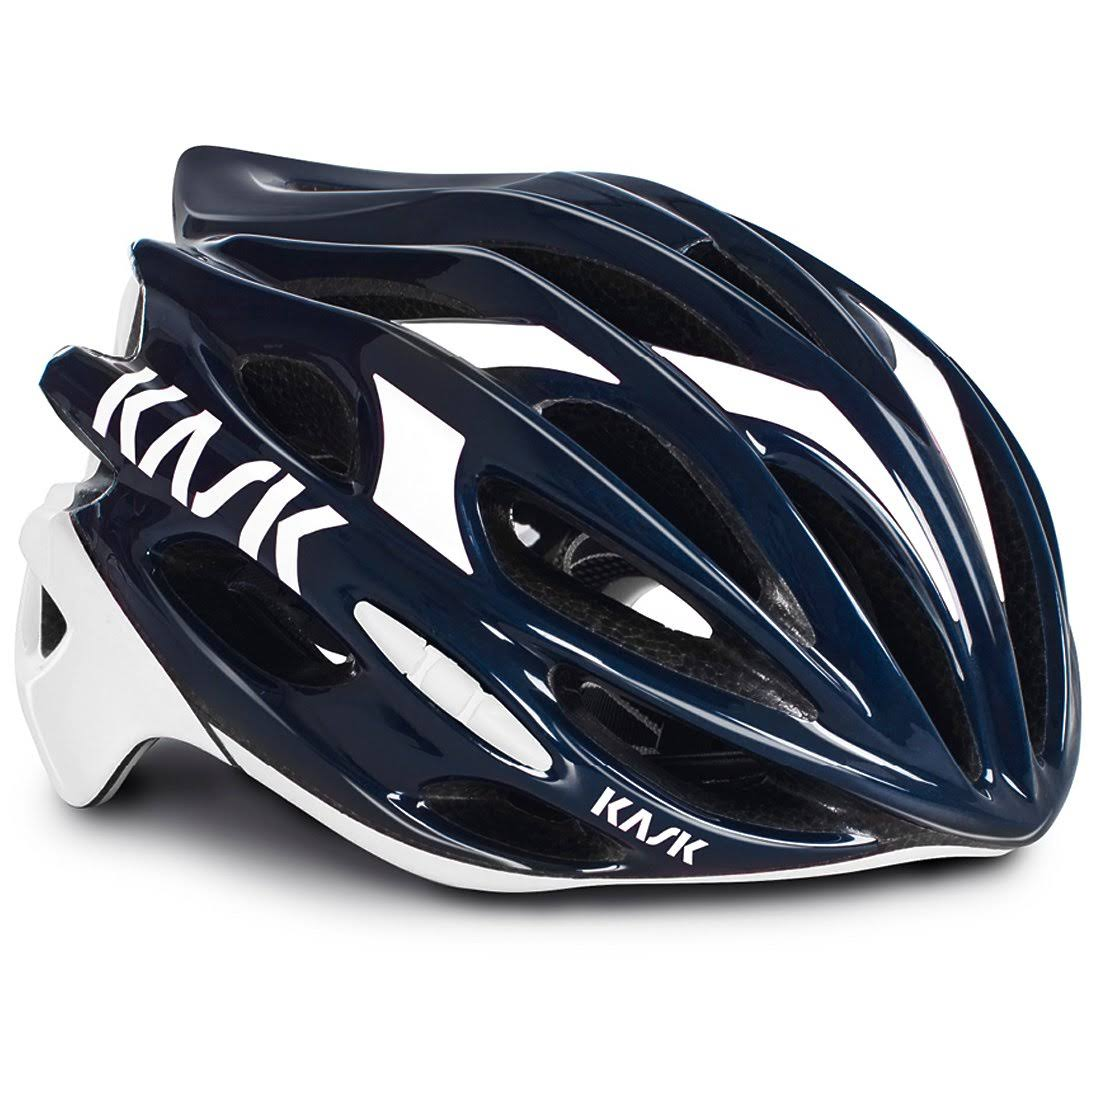 Kask Mojito Helmet - Navy Blue / White - Medium